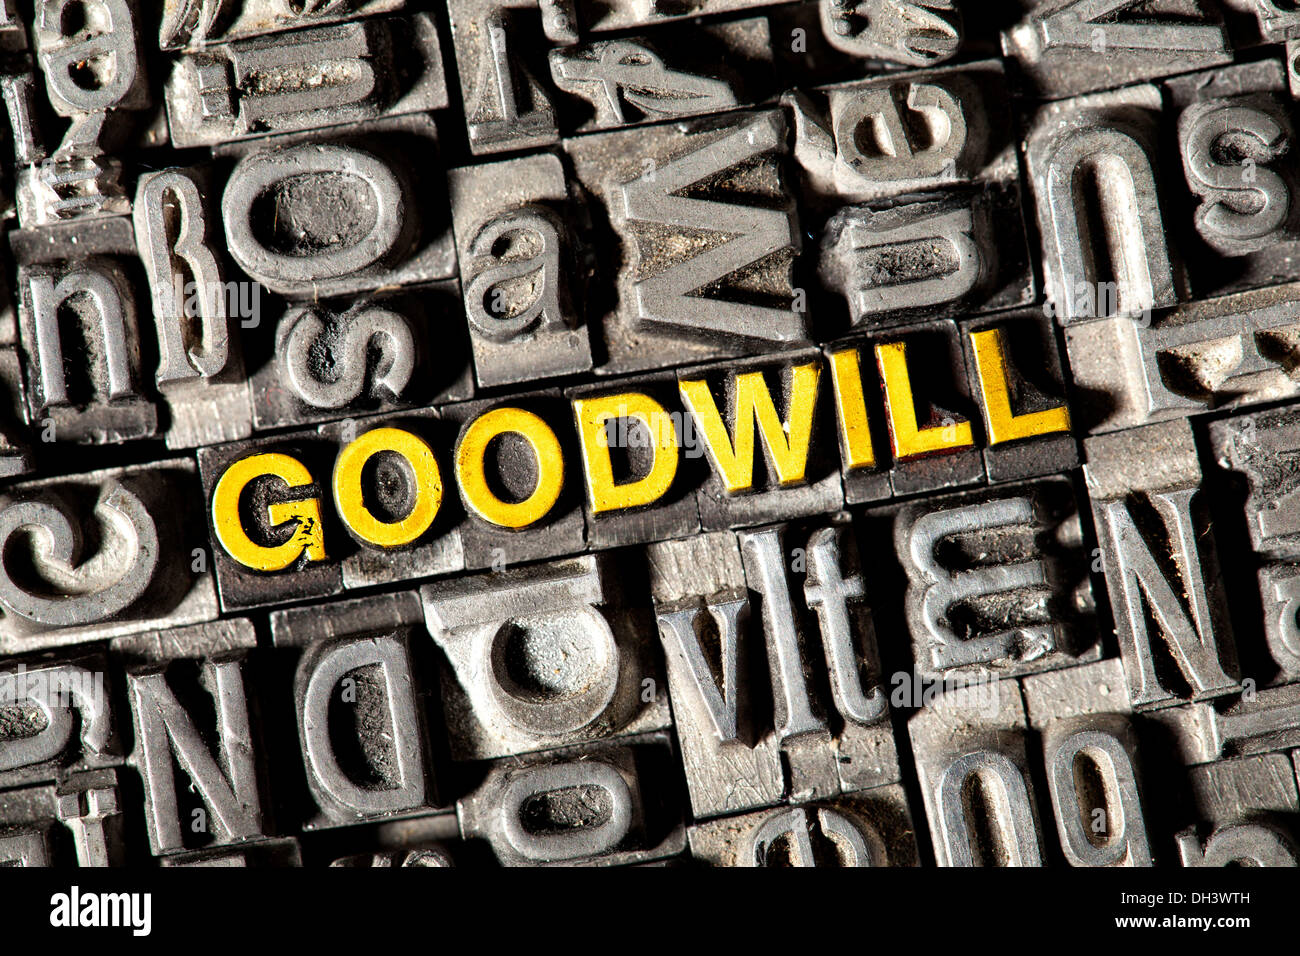 Old lead letters forming the word Goodwill - Stock Image